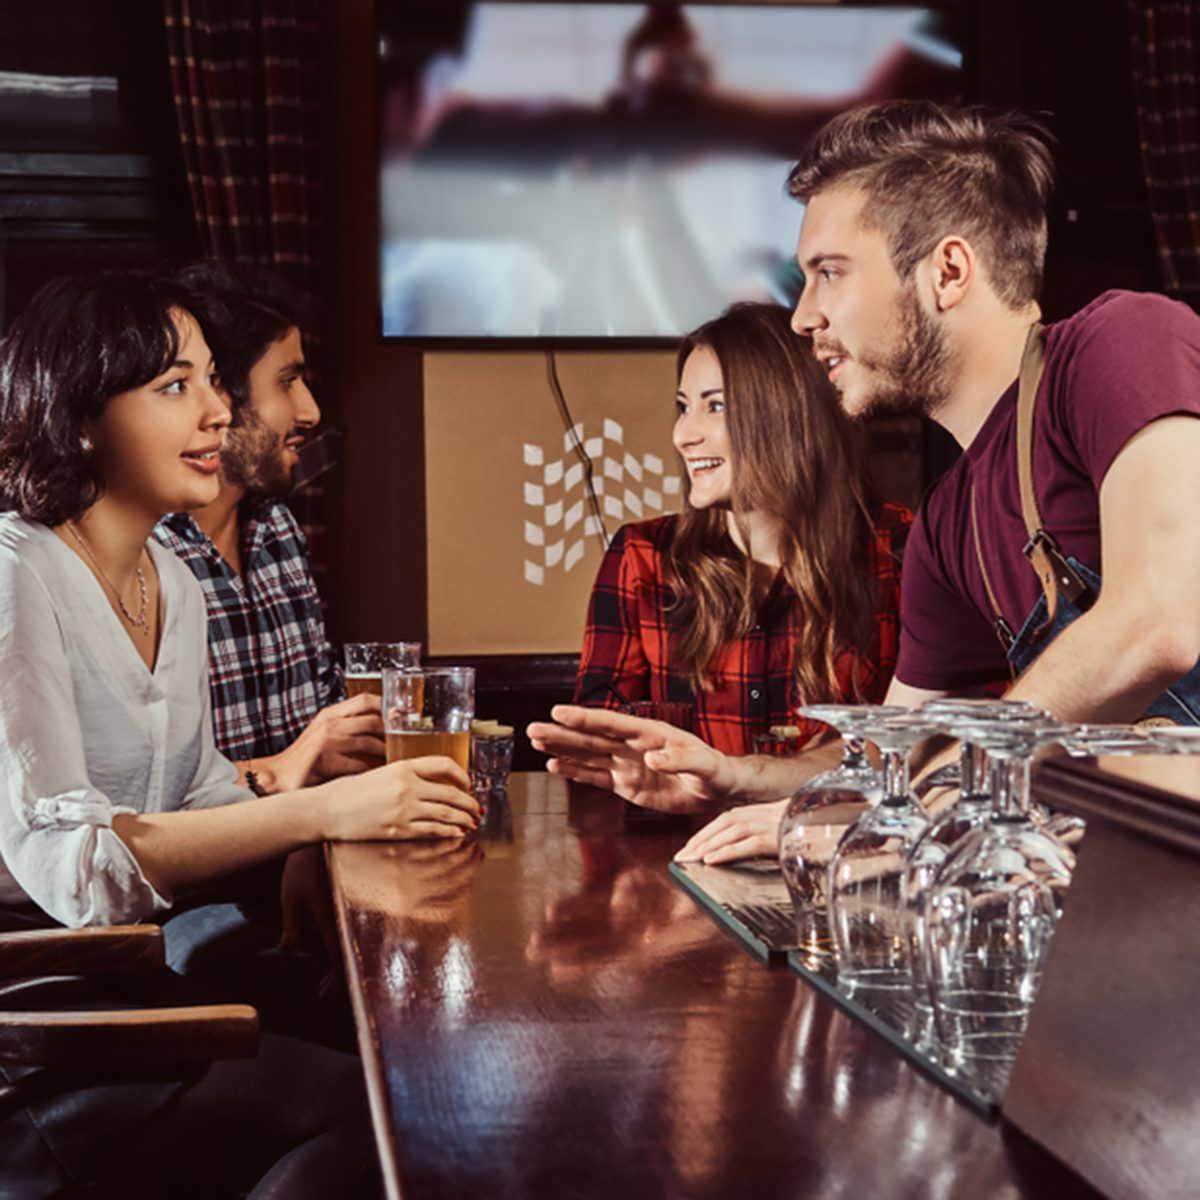 Group of happy multiracial friends resting at bar and talking with the bartender.; Shutterstock ID 1195313740; Job (TFH, TOH, RD, BNB, CWM, CM): TOH